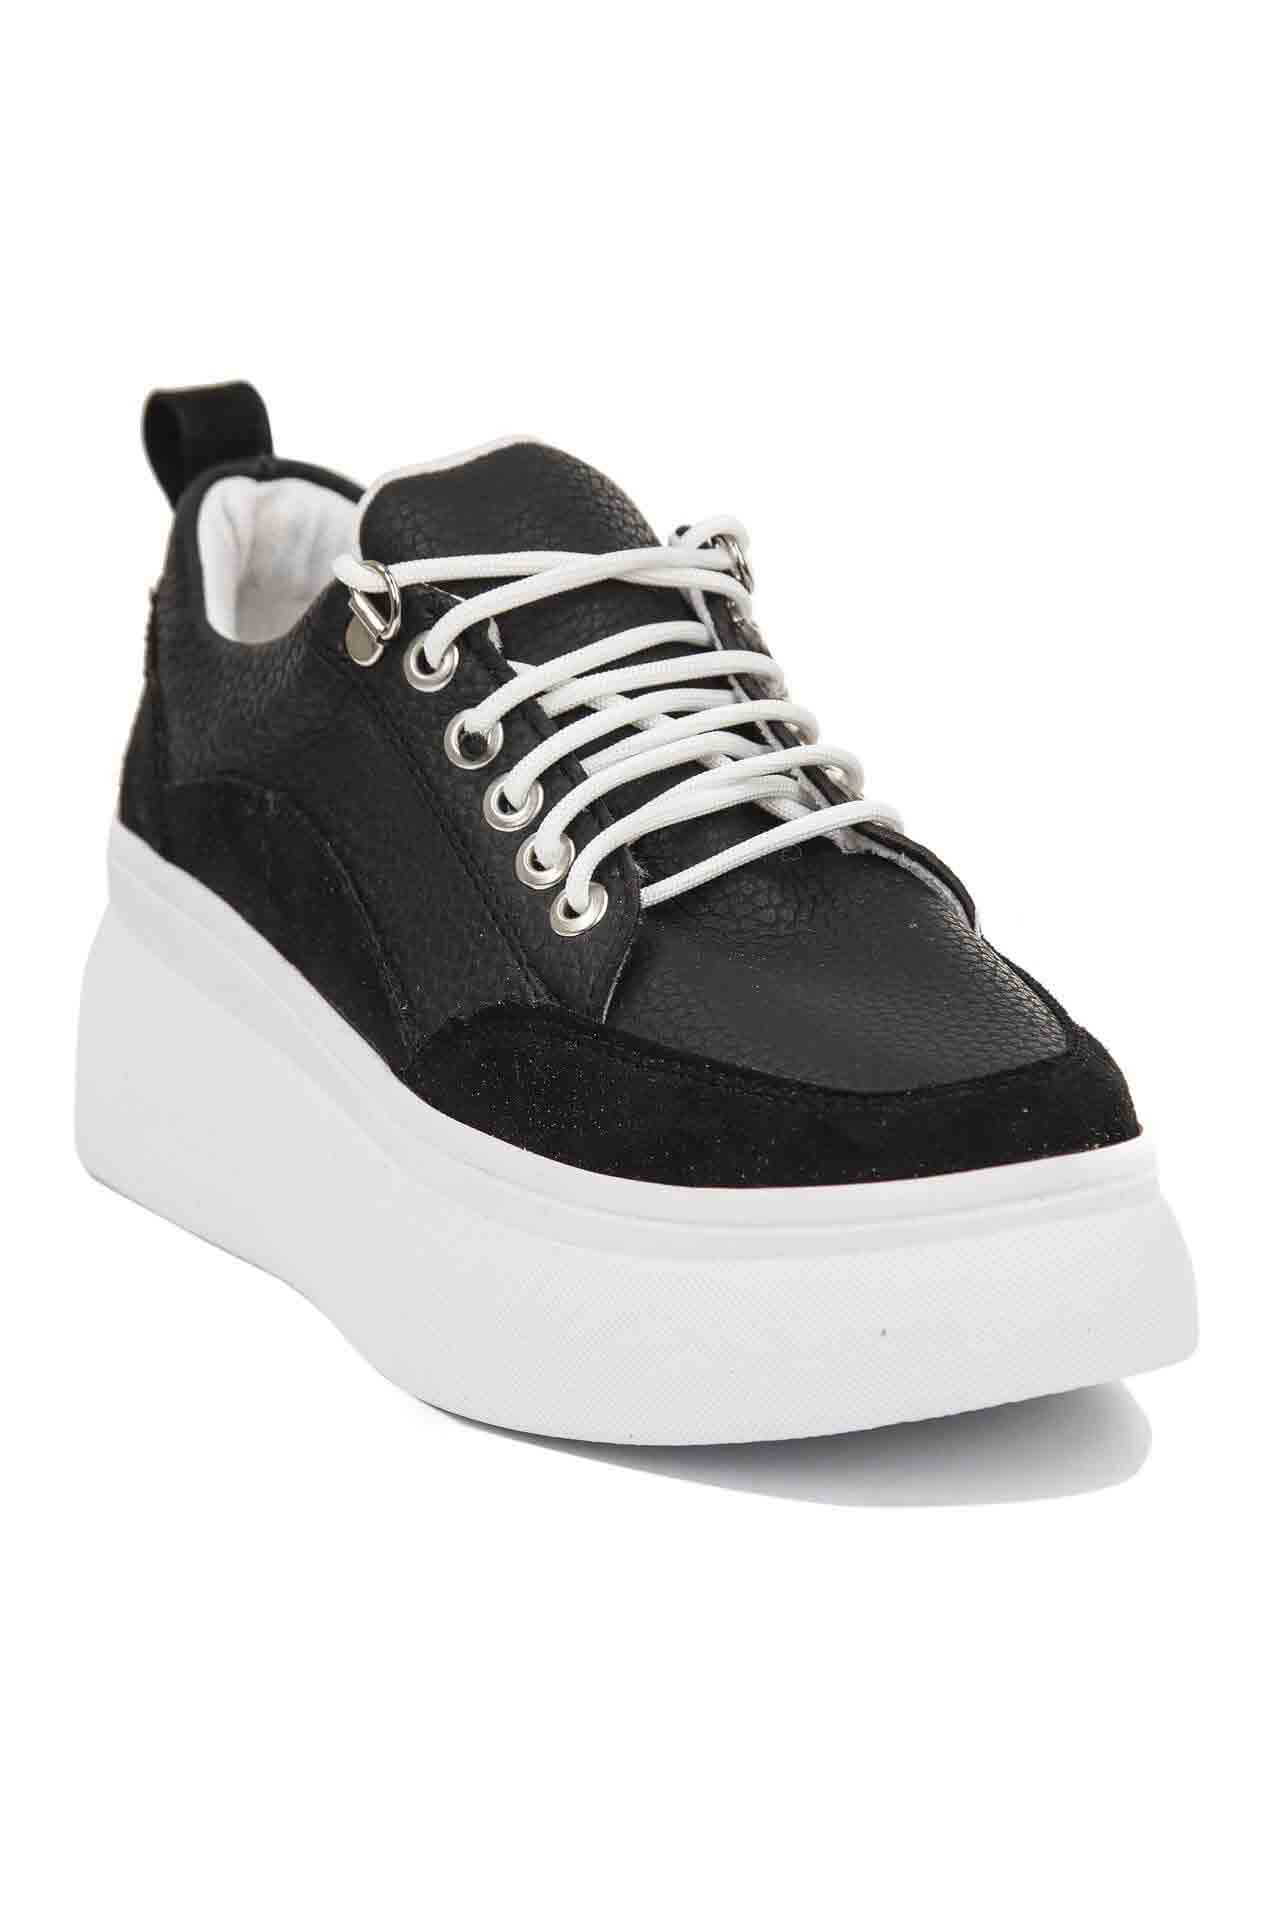 what are rocker bottom shoes